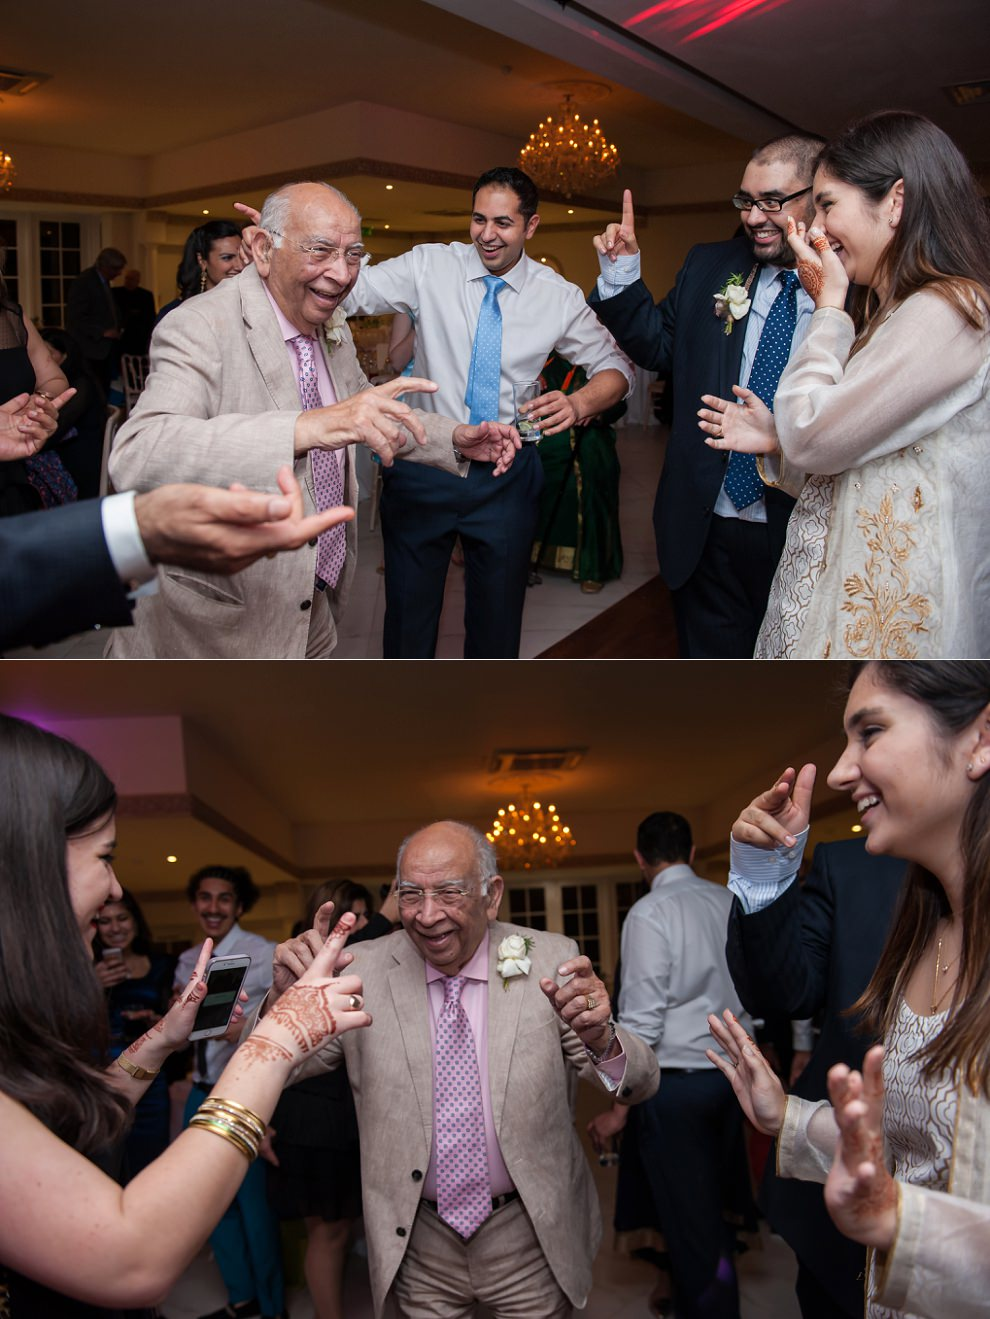 Grandad dancing at wedding